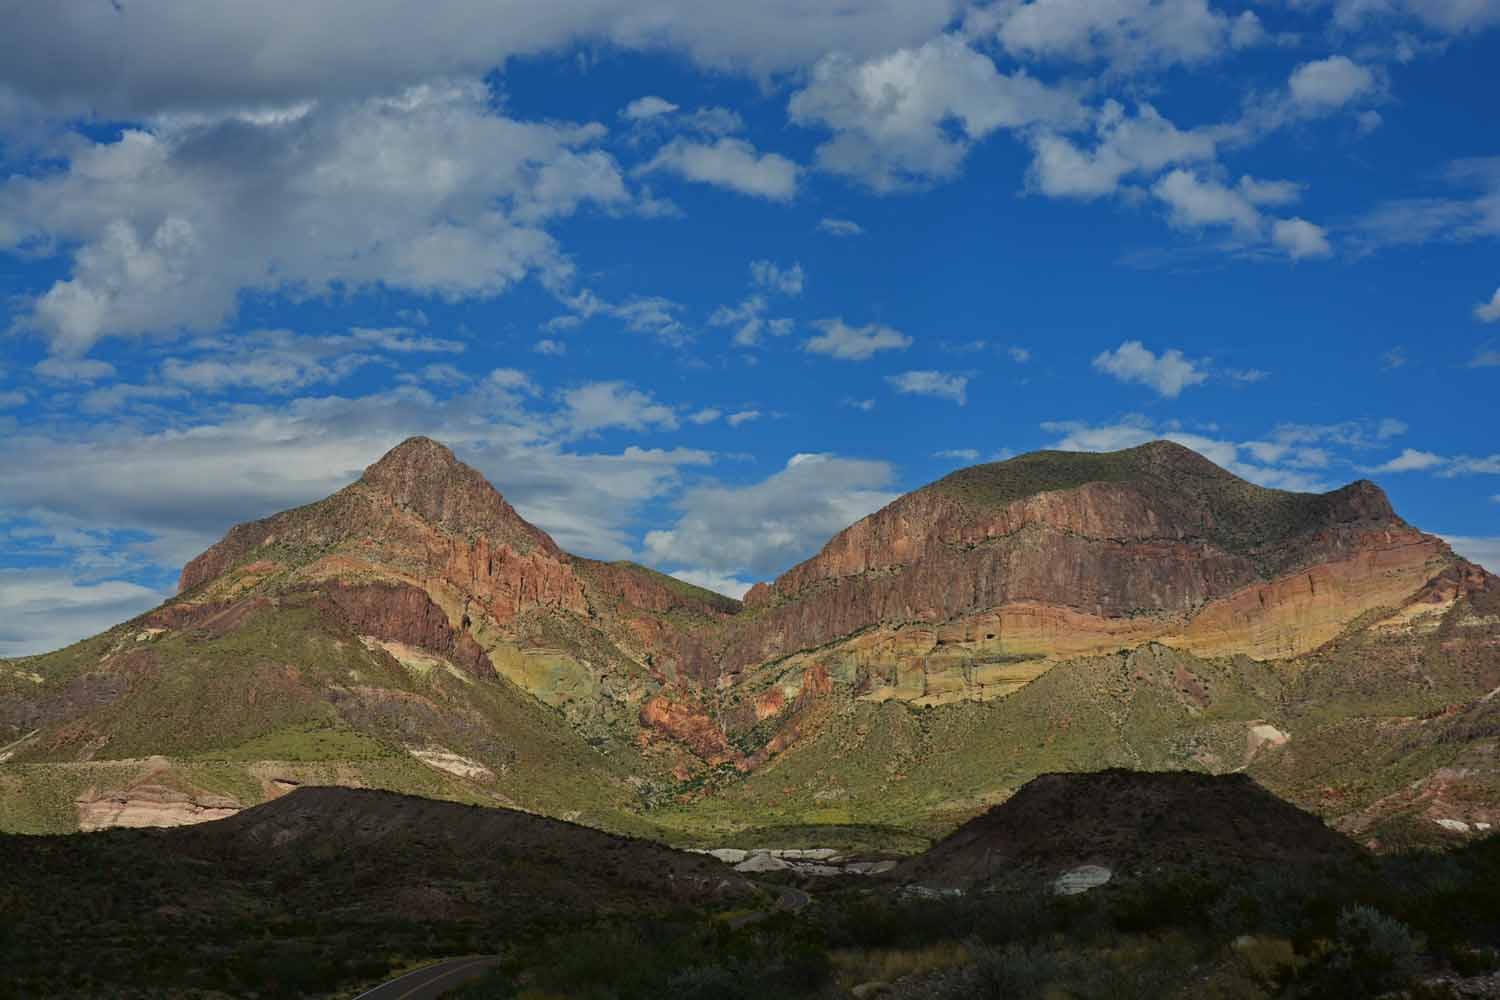 ...of course the Big Bend  mountains had to be documented using the old Nikon!